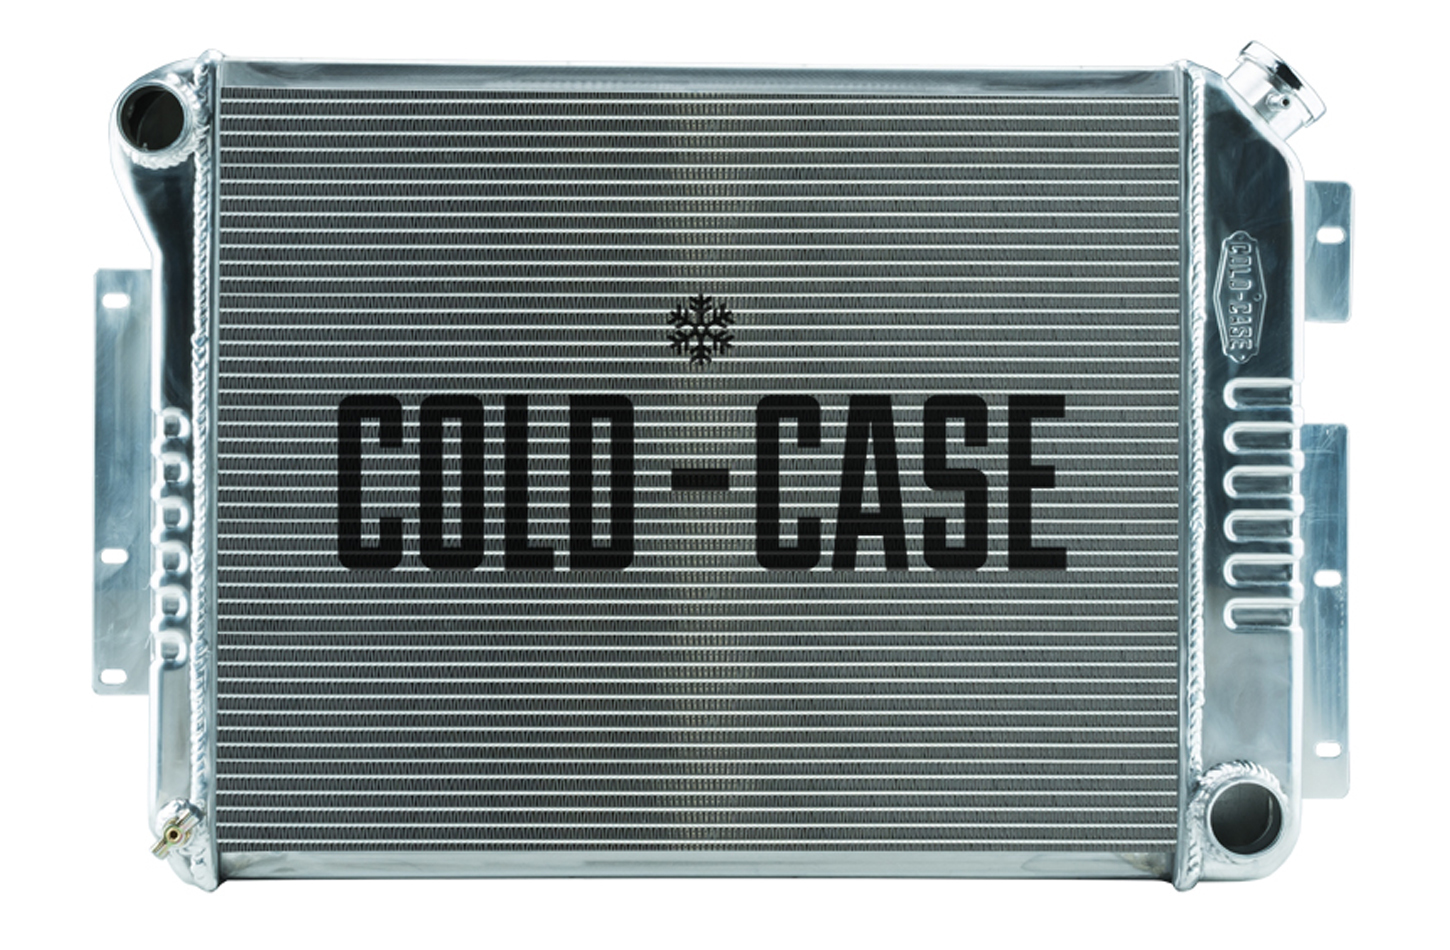 Cold Case Radiators CHC549 Radiator, 28.8 in W x 18.5 in H x 3 in D, Driver Side Inlet, Passenger Side Outlet, Aluminum, Polished, Manual, Small Block Chevy, GM F-Body 1967-69, Each